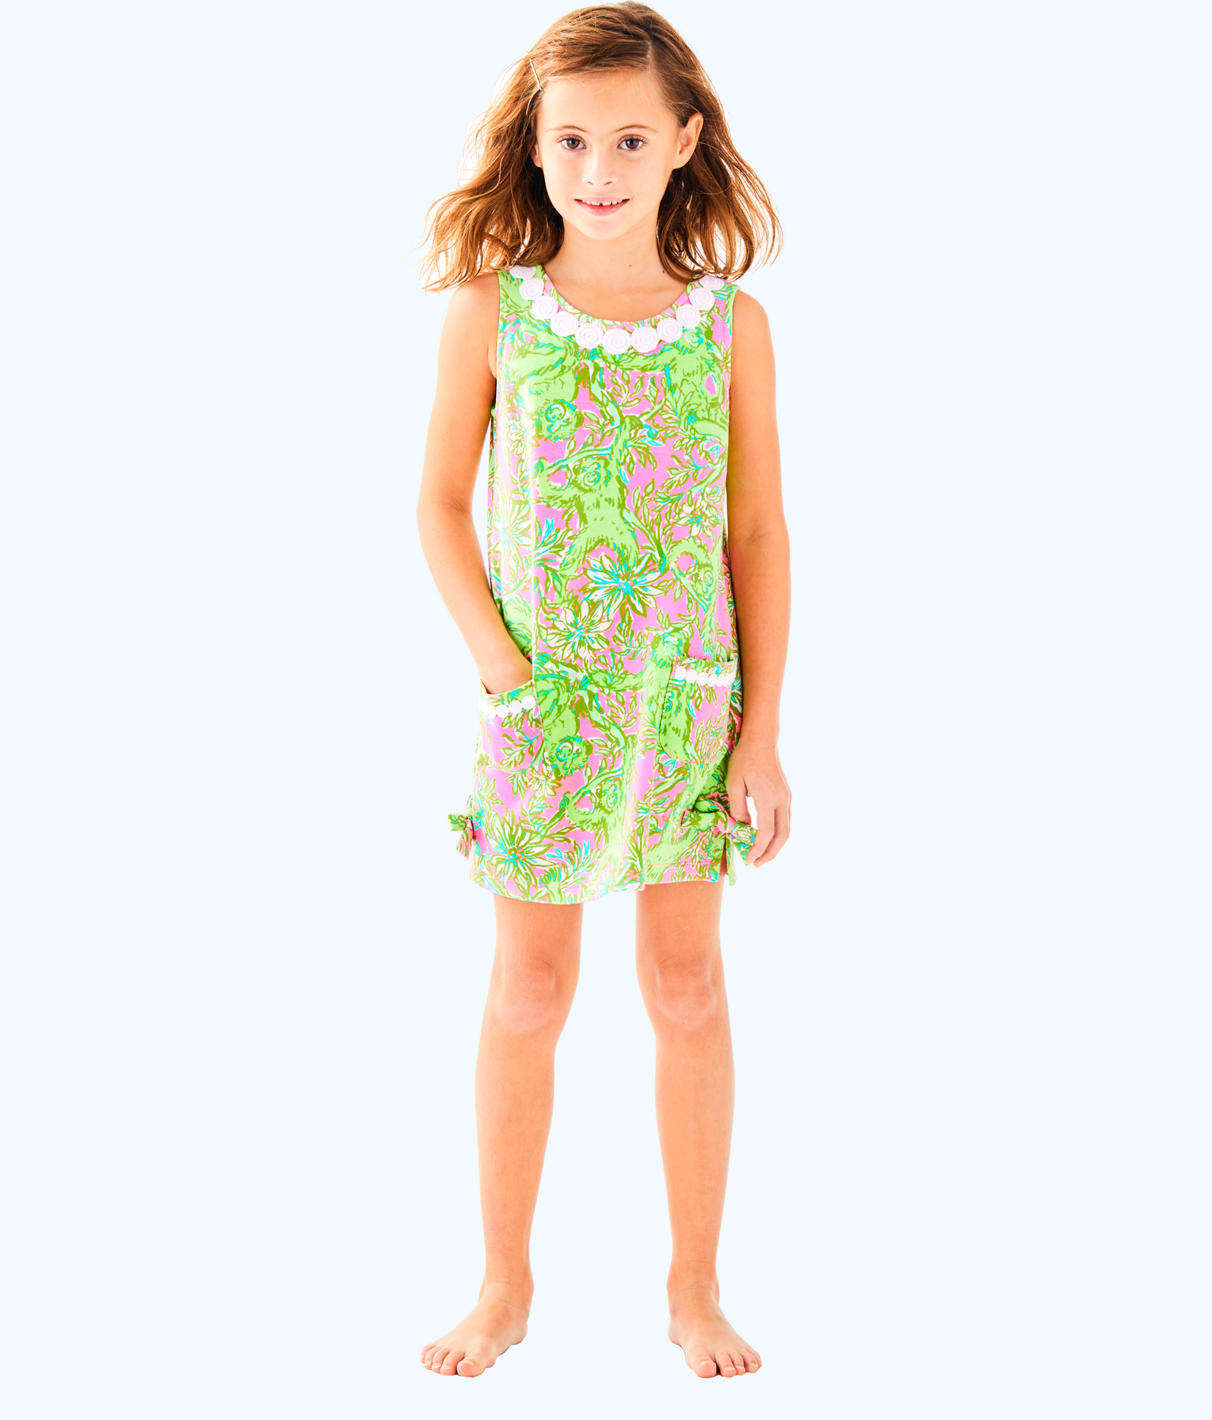 Lilly Pulitzer Lilly Pulitzer Girls Little Lilly Classic Shift Dress